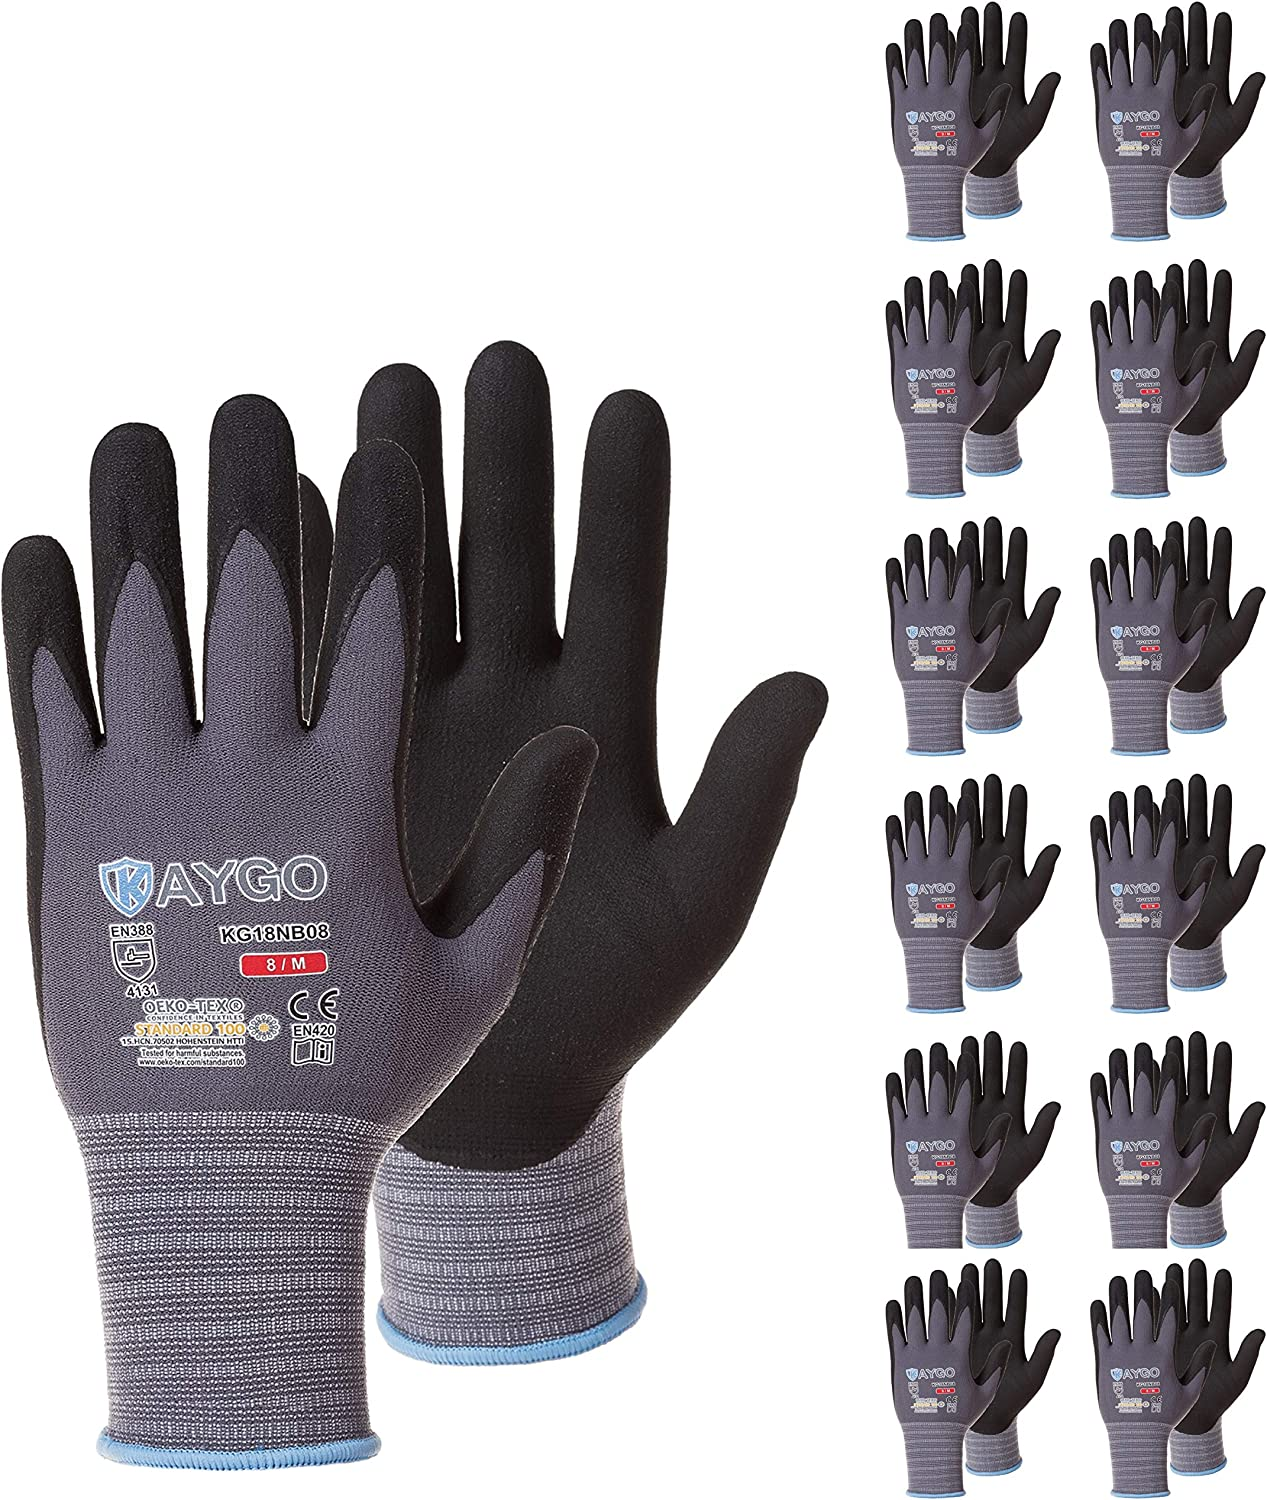 Seamless Knit Glove with Polyurethane Coated Smooth Grip on Palm /& Fingers Safety Work Gloves PU Coated-12 Pairs,KAYGO KG11PB for Men and Women Ideal for General Duty Work Medium, Black